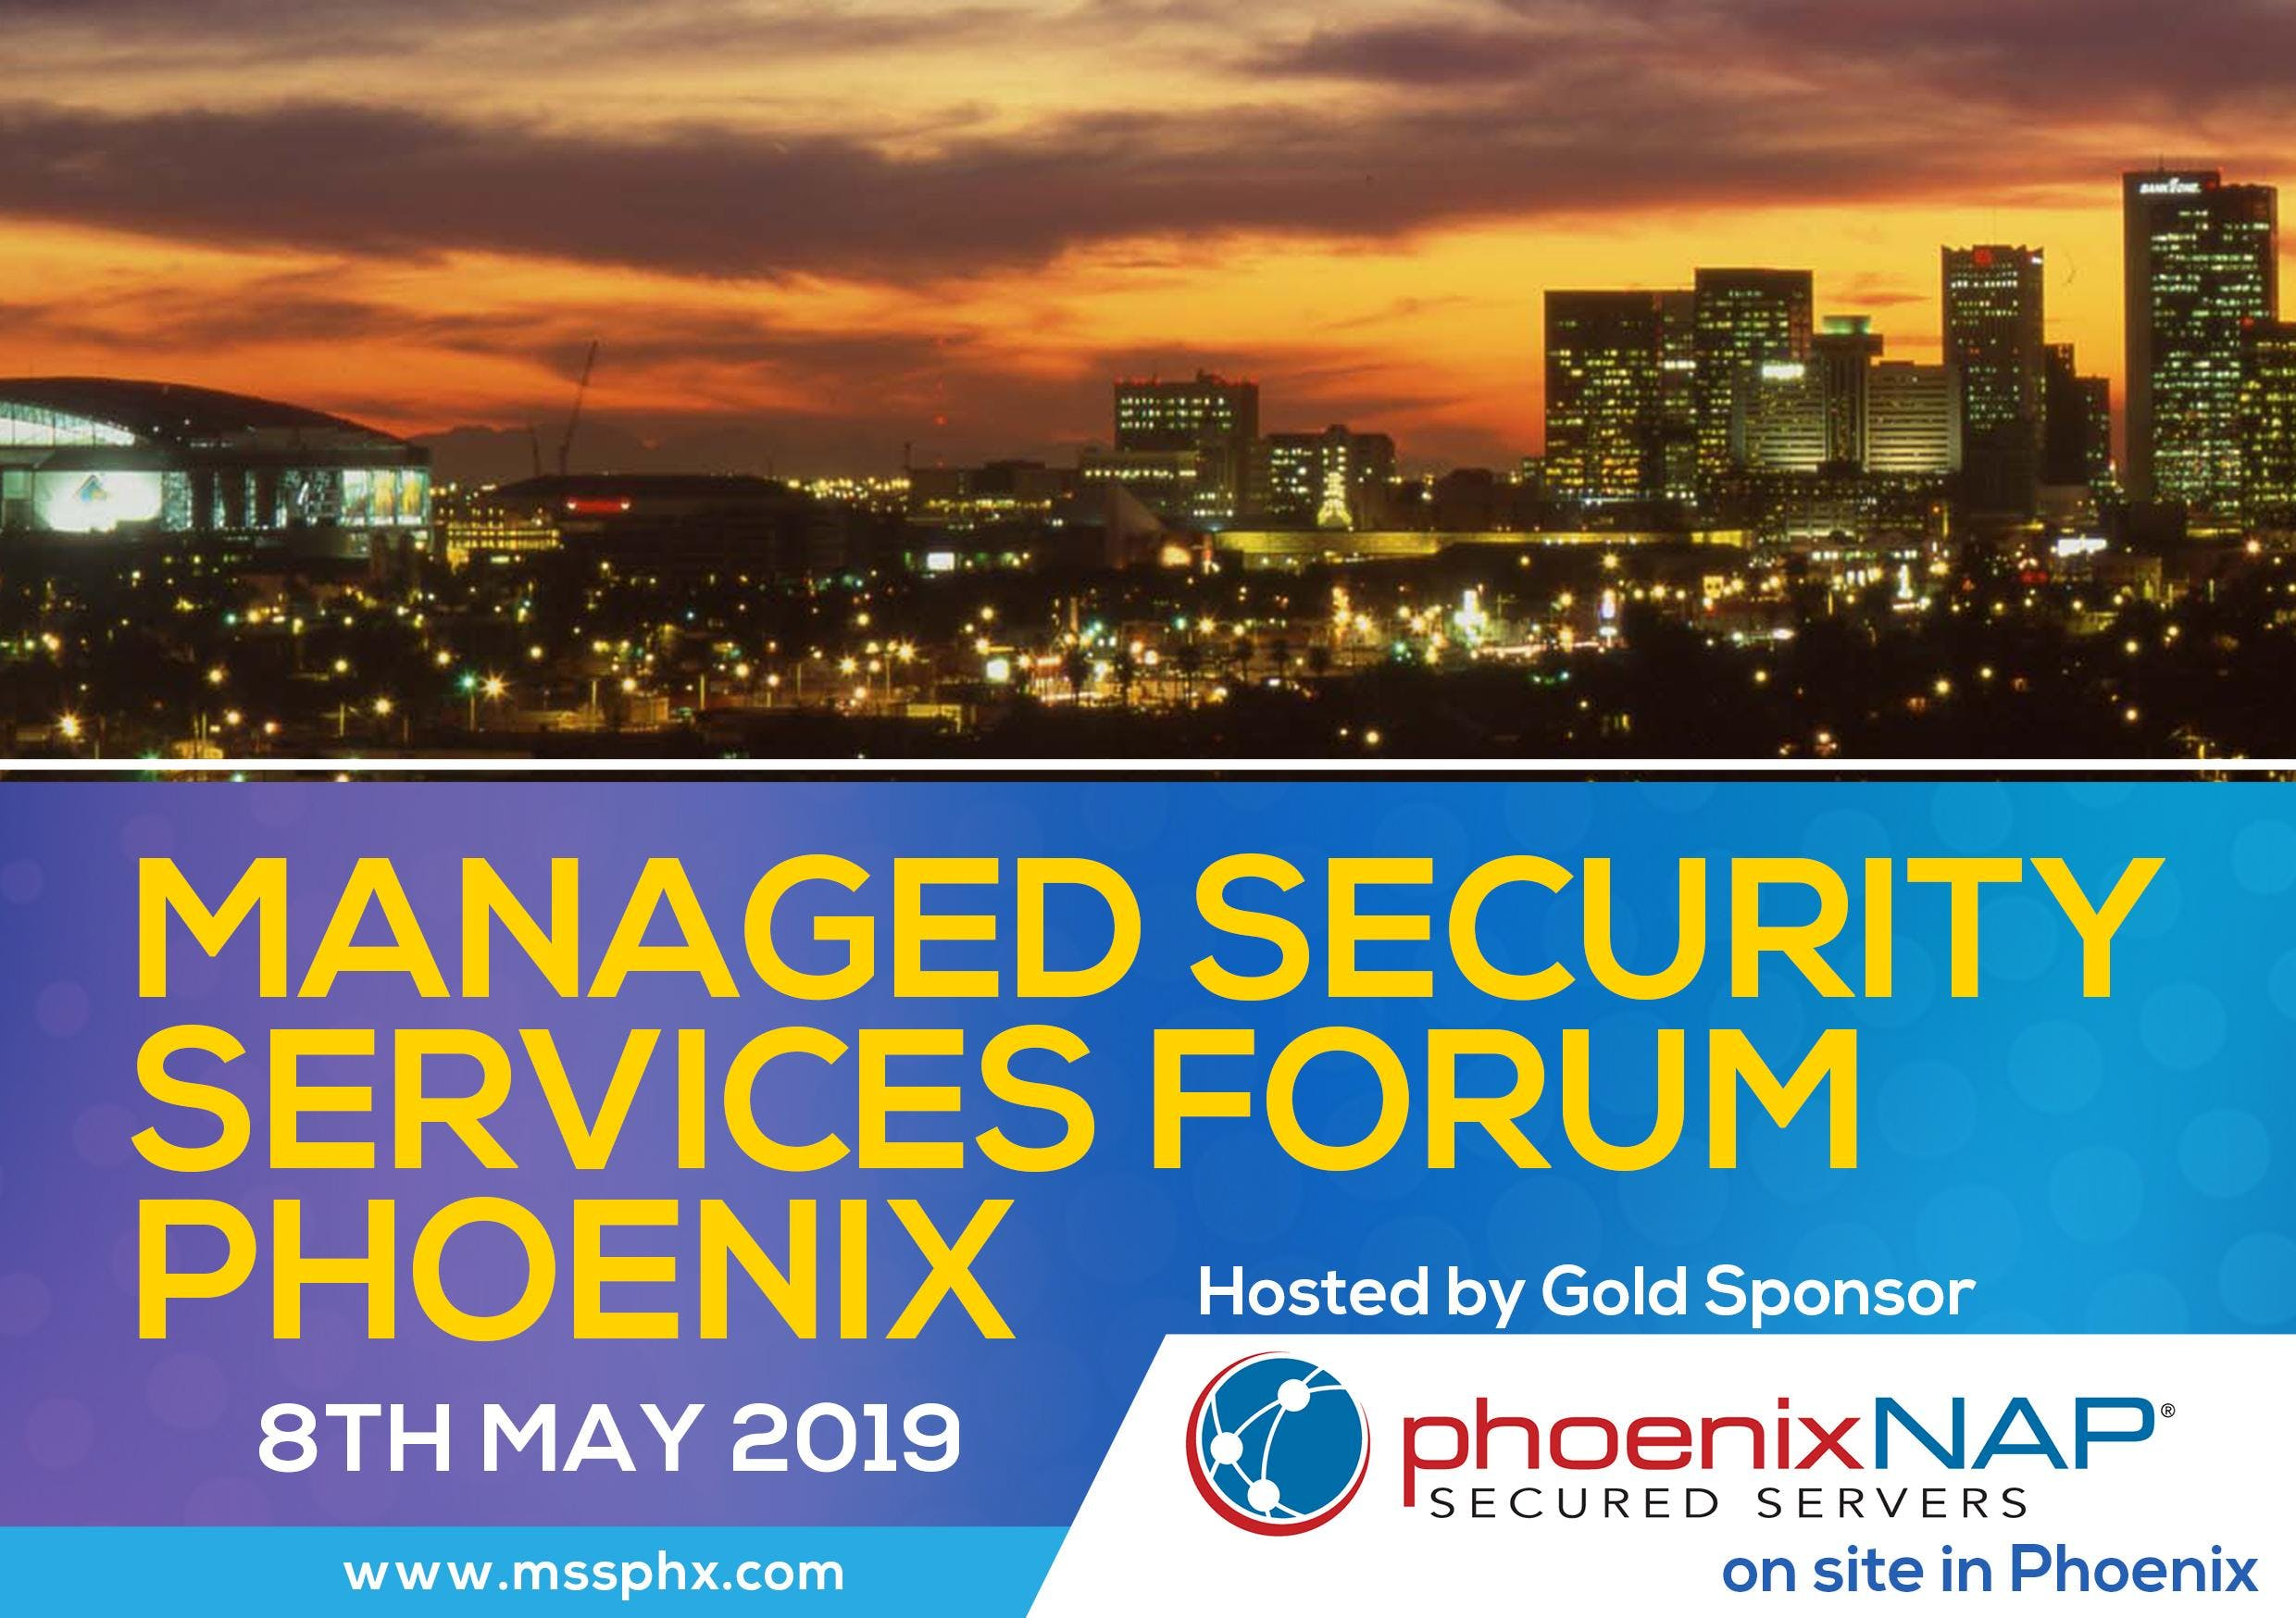 Managed Security Services Forum Phoenix (hosted by PhoenixNap)